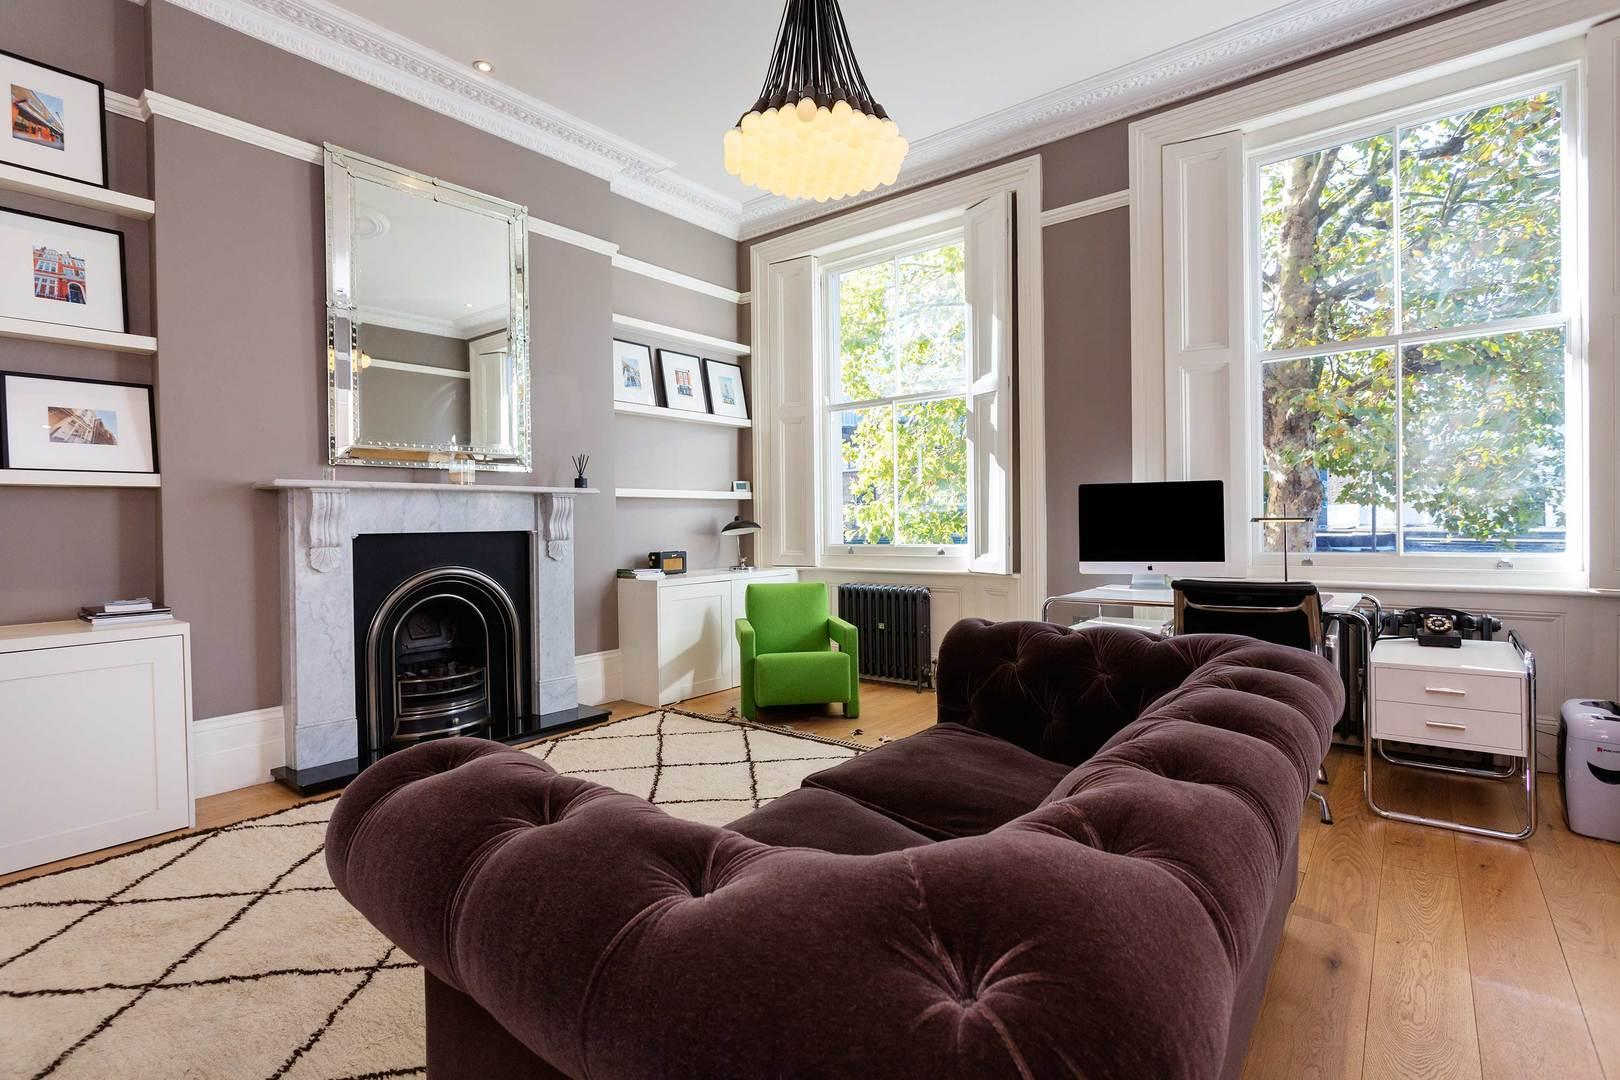 Property Image 2 - Bright Notting Hill Apartment with Impeccable Interior